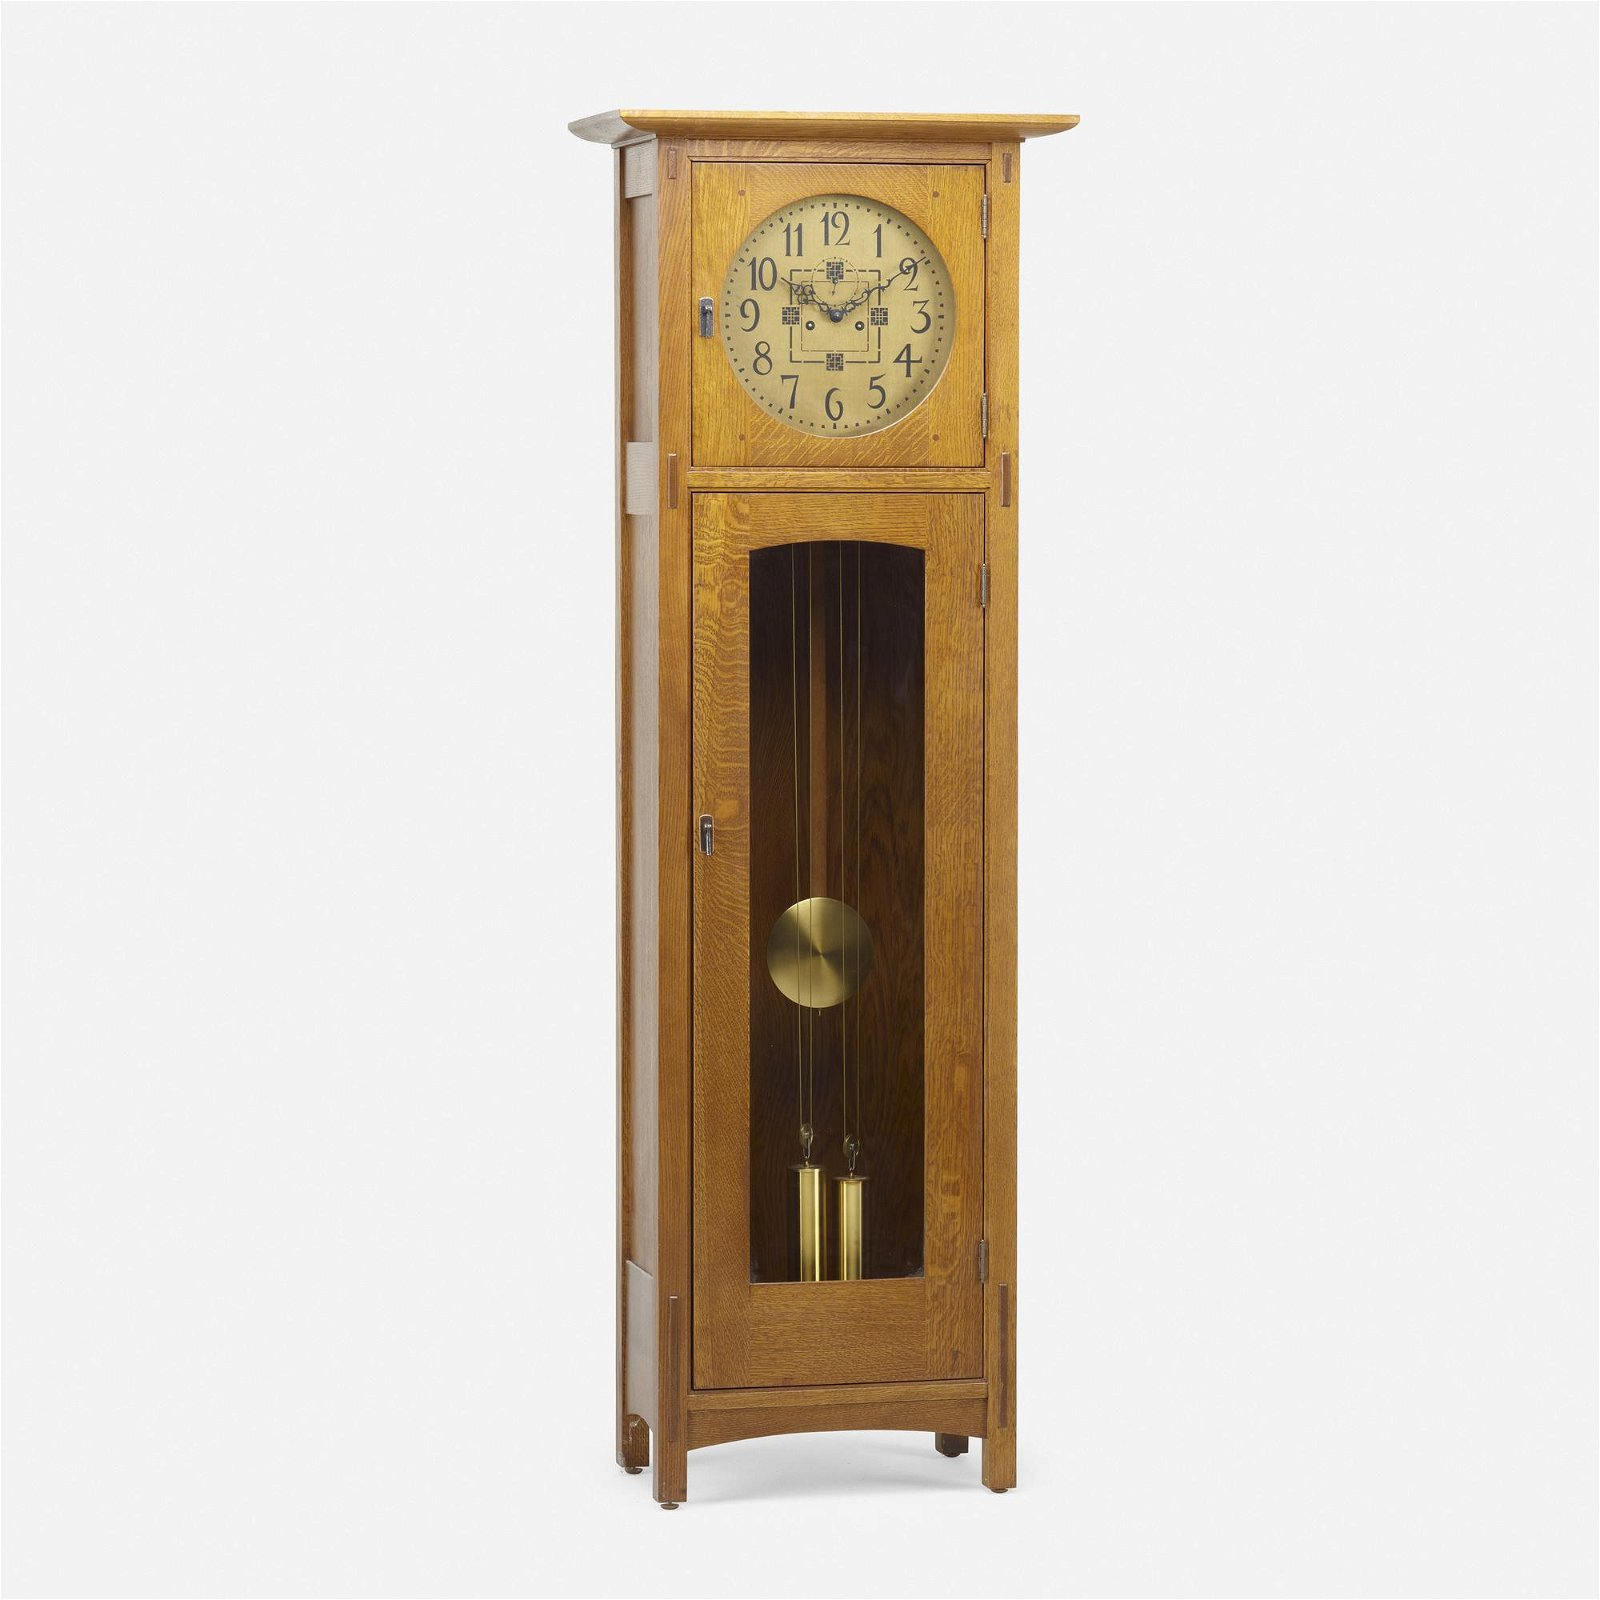 L. & J.G. Stickley, contemporary clock